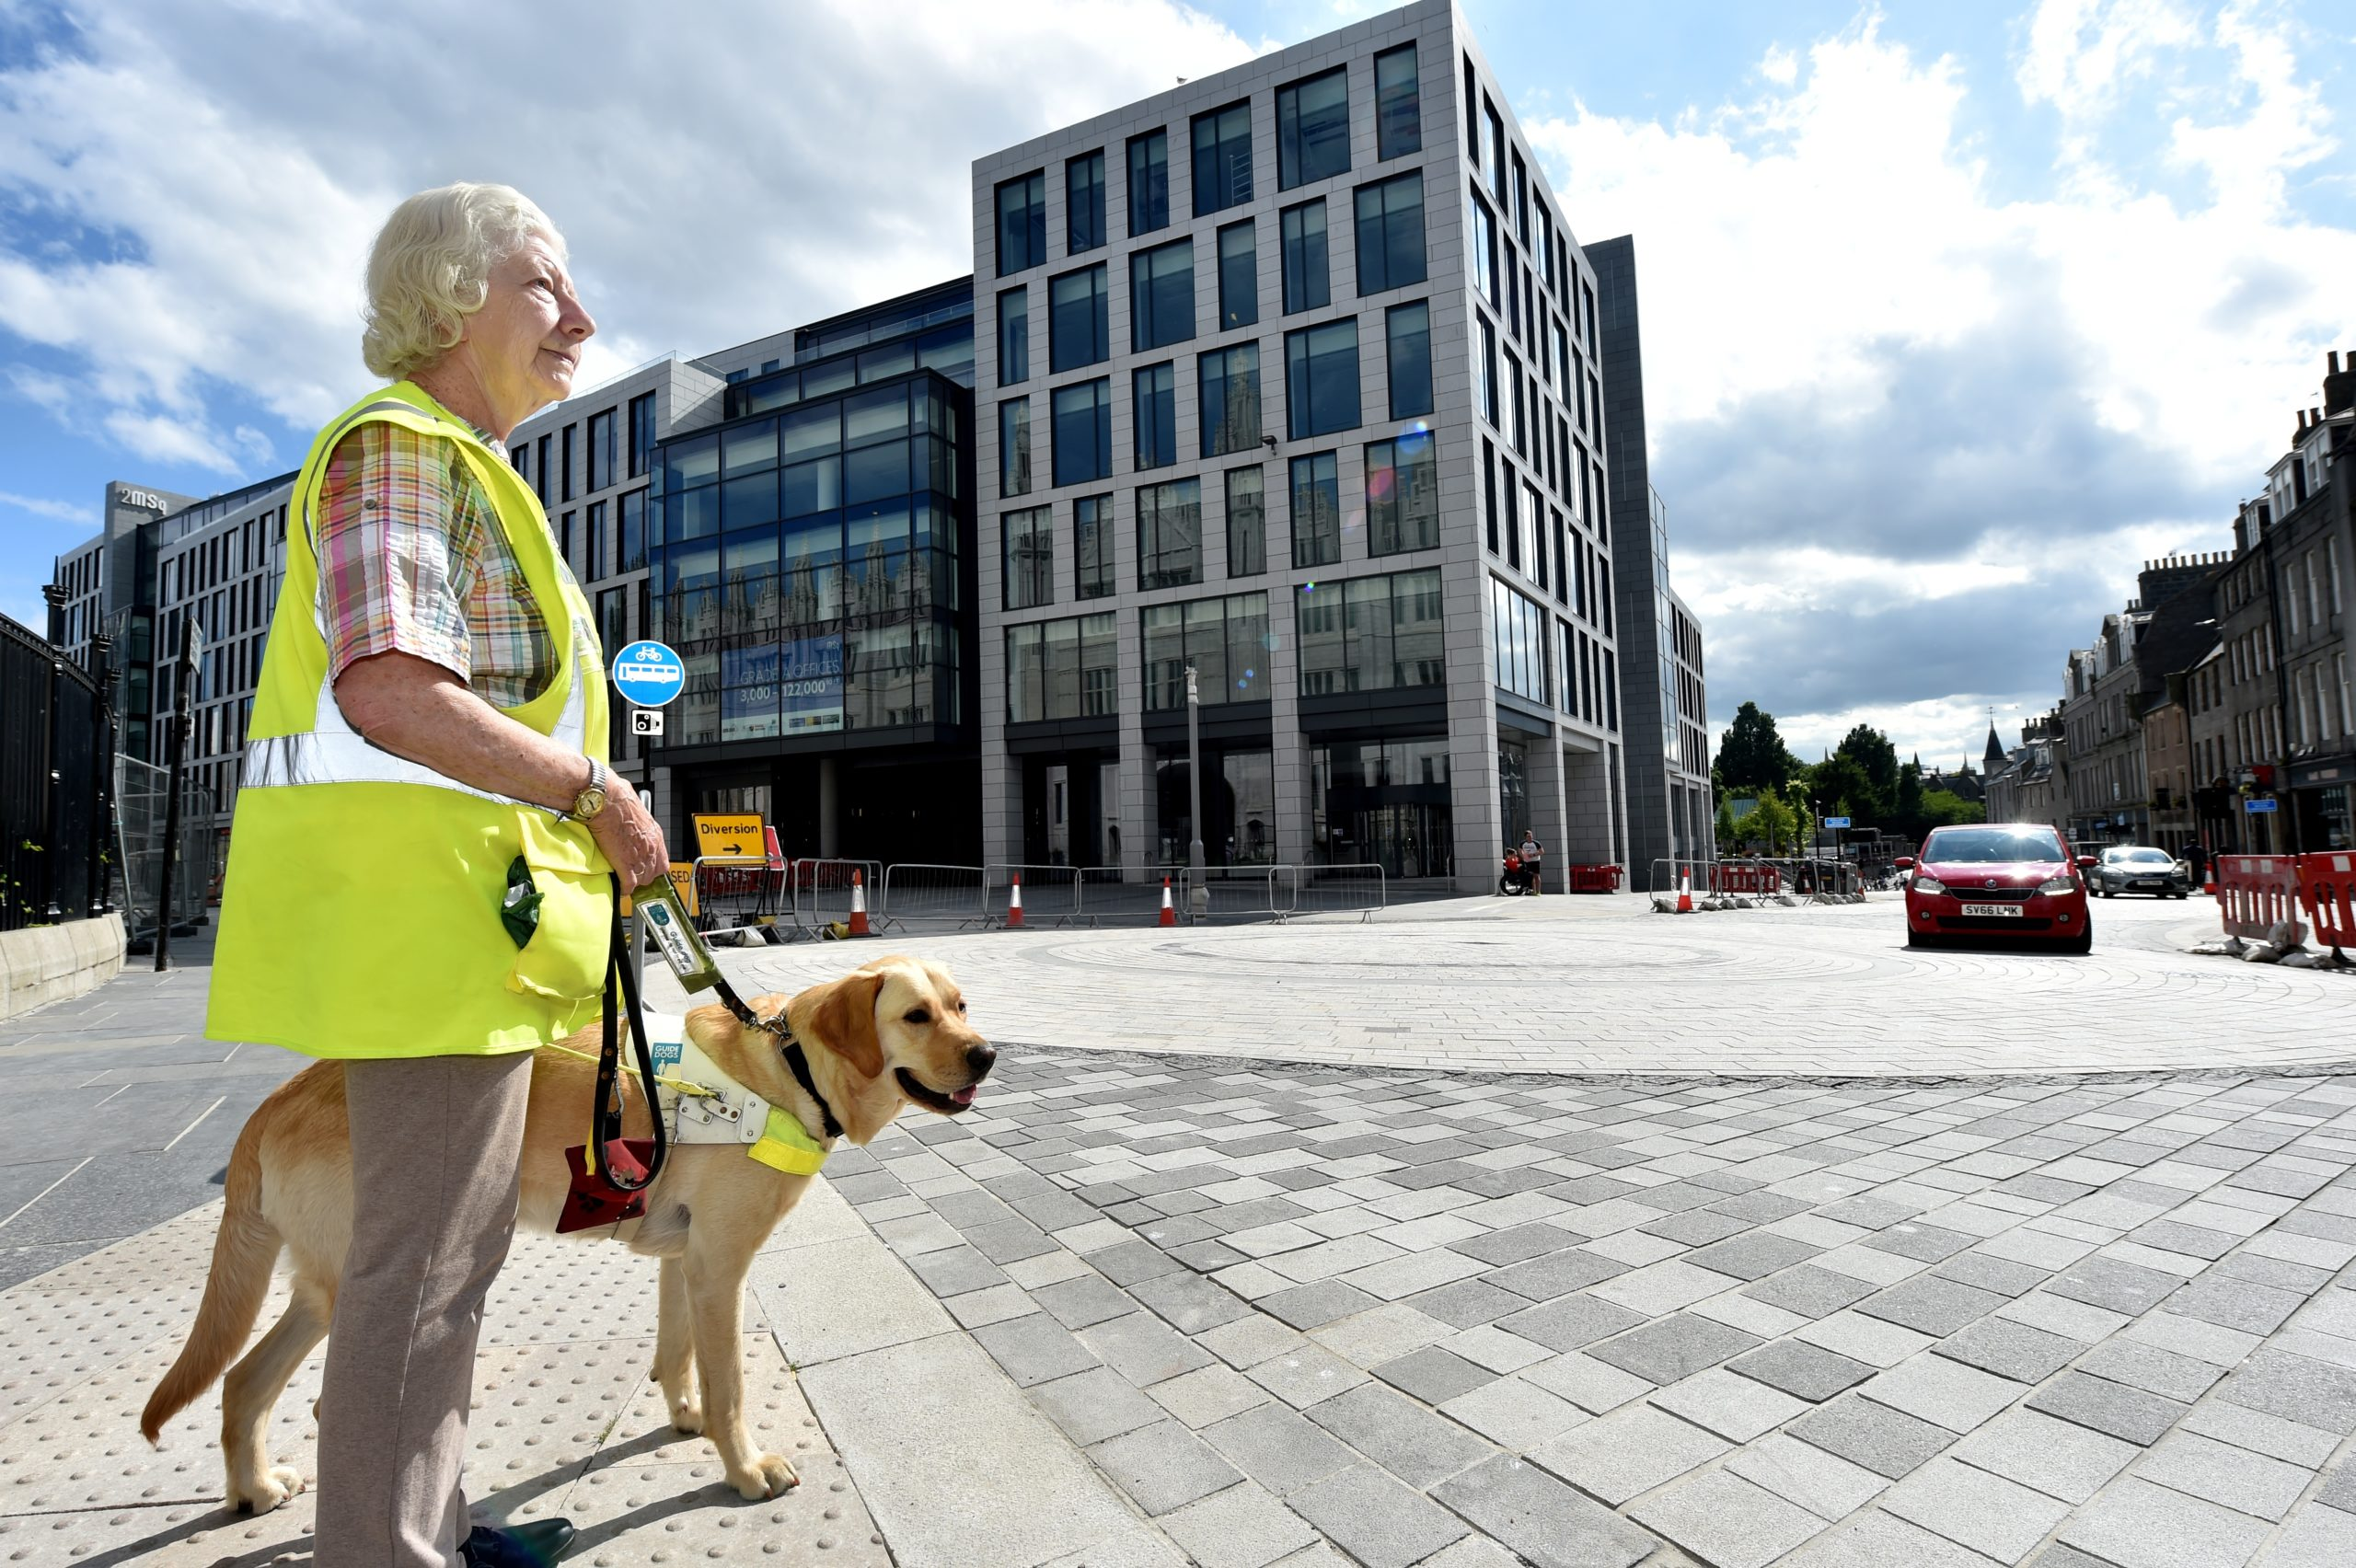 Mary Rasmussen and her guide dog Vince